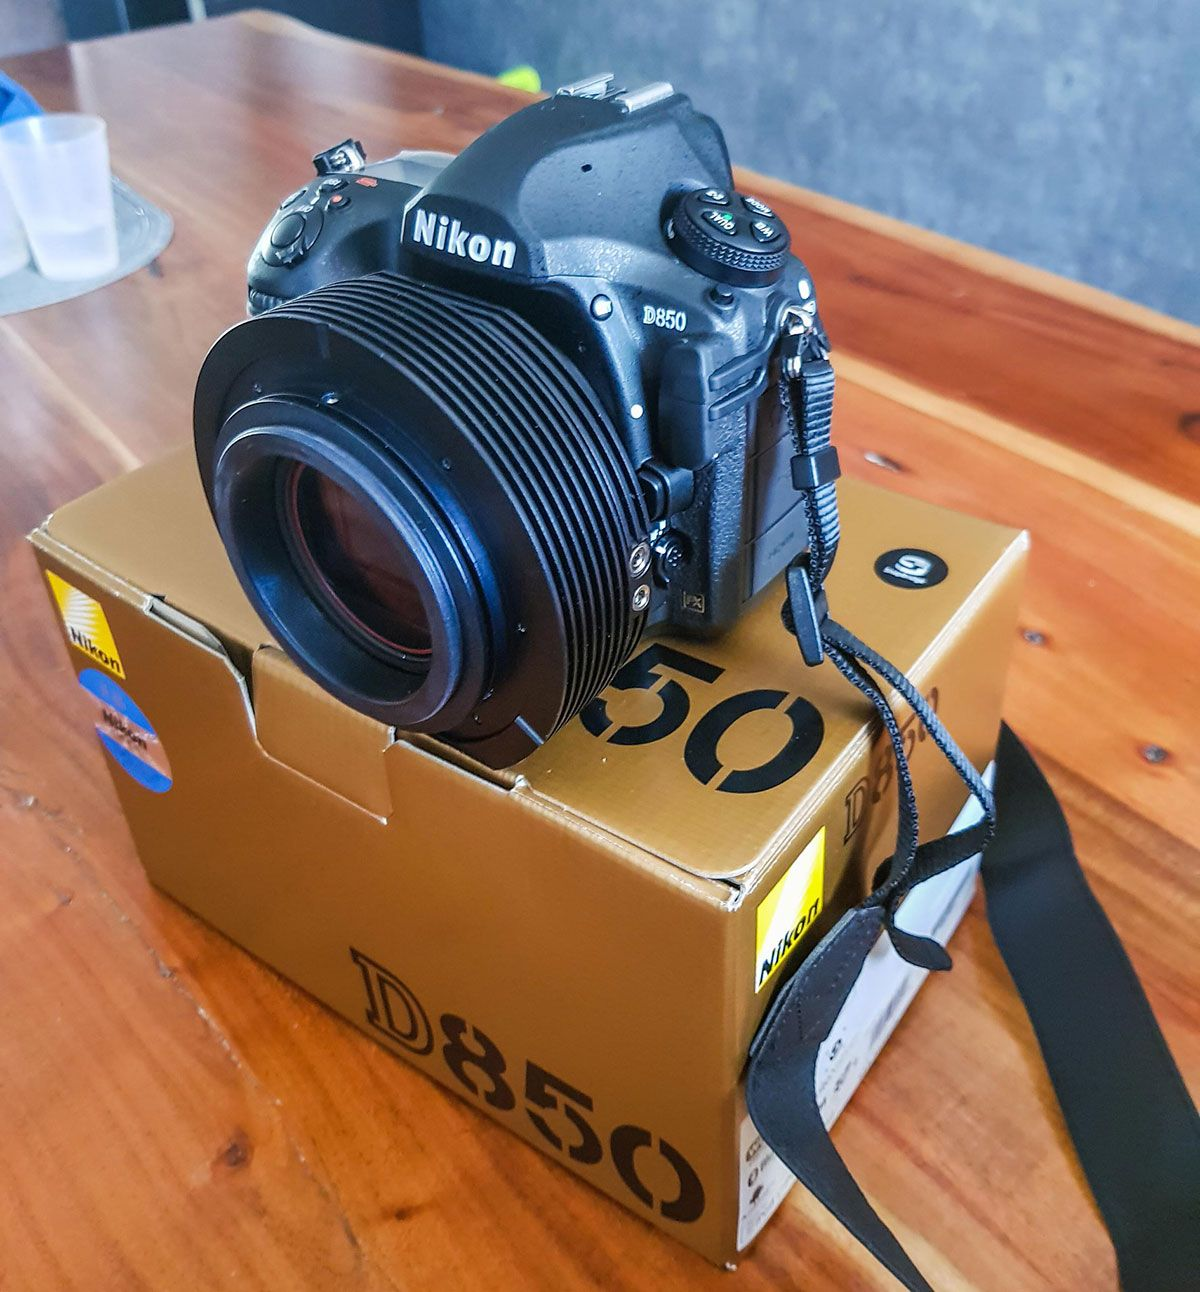 New: Nikon D850 cooled camera for astrophotography | Nikon Rumors